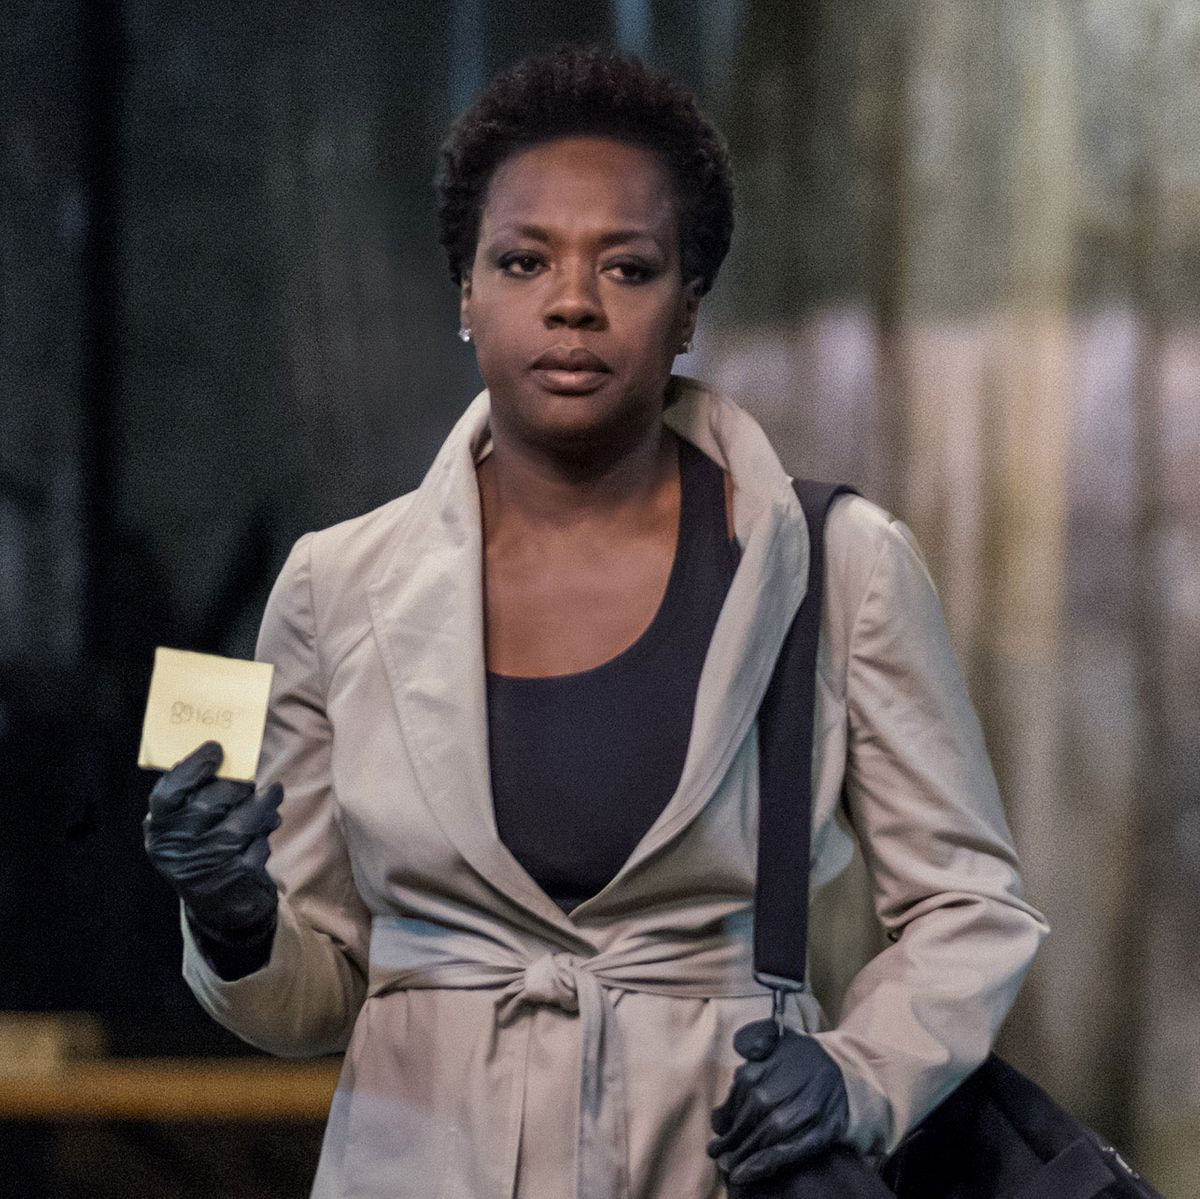 Let's Talk About the Ending of Widows